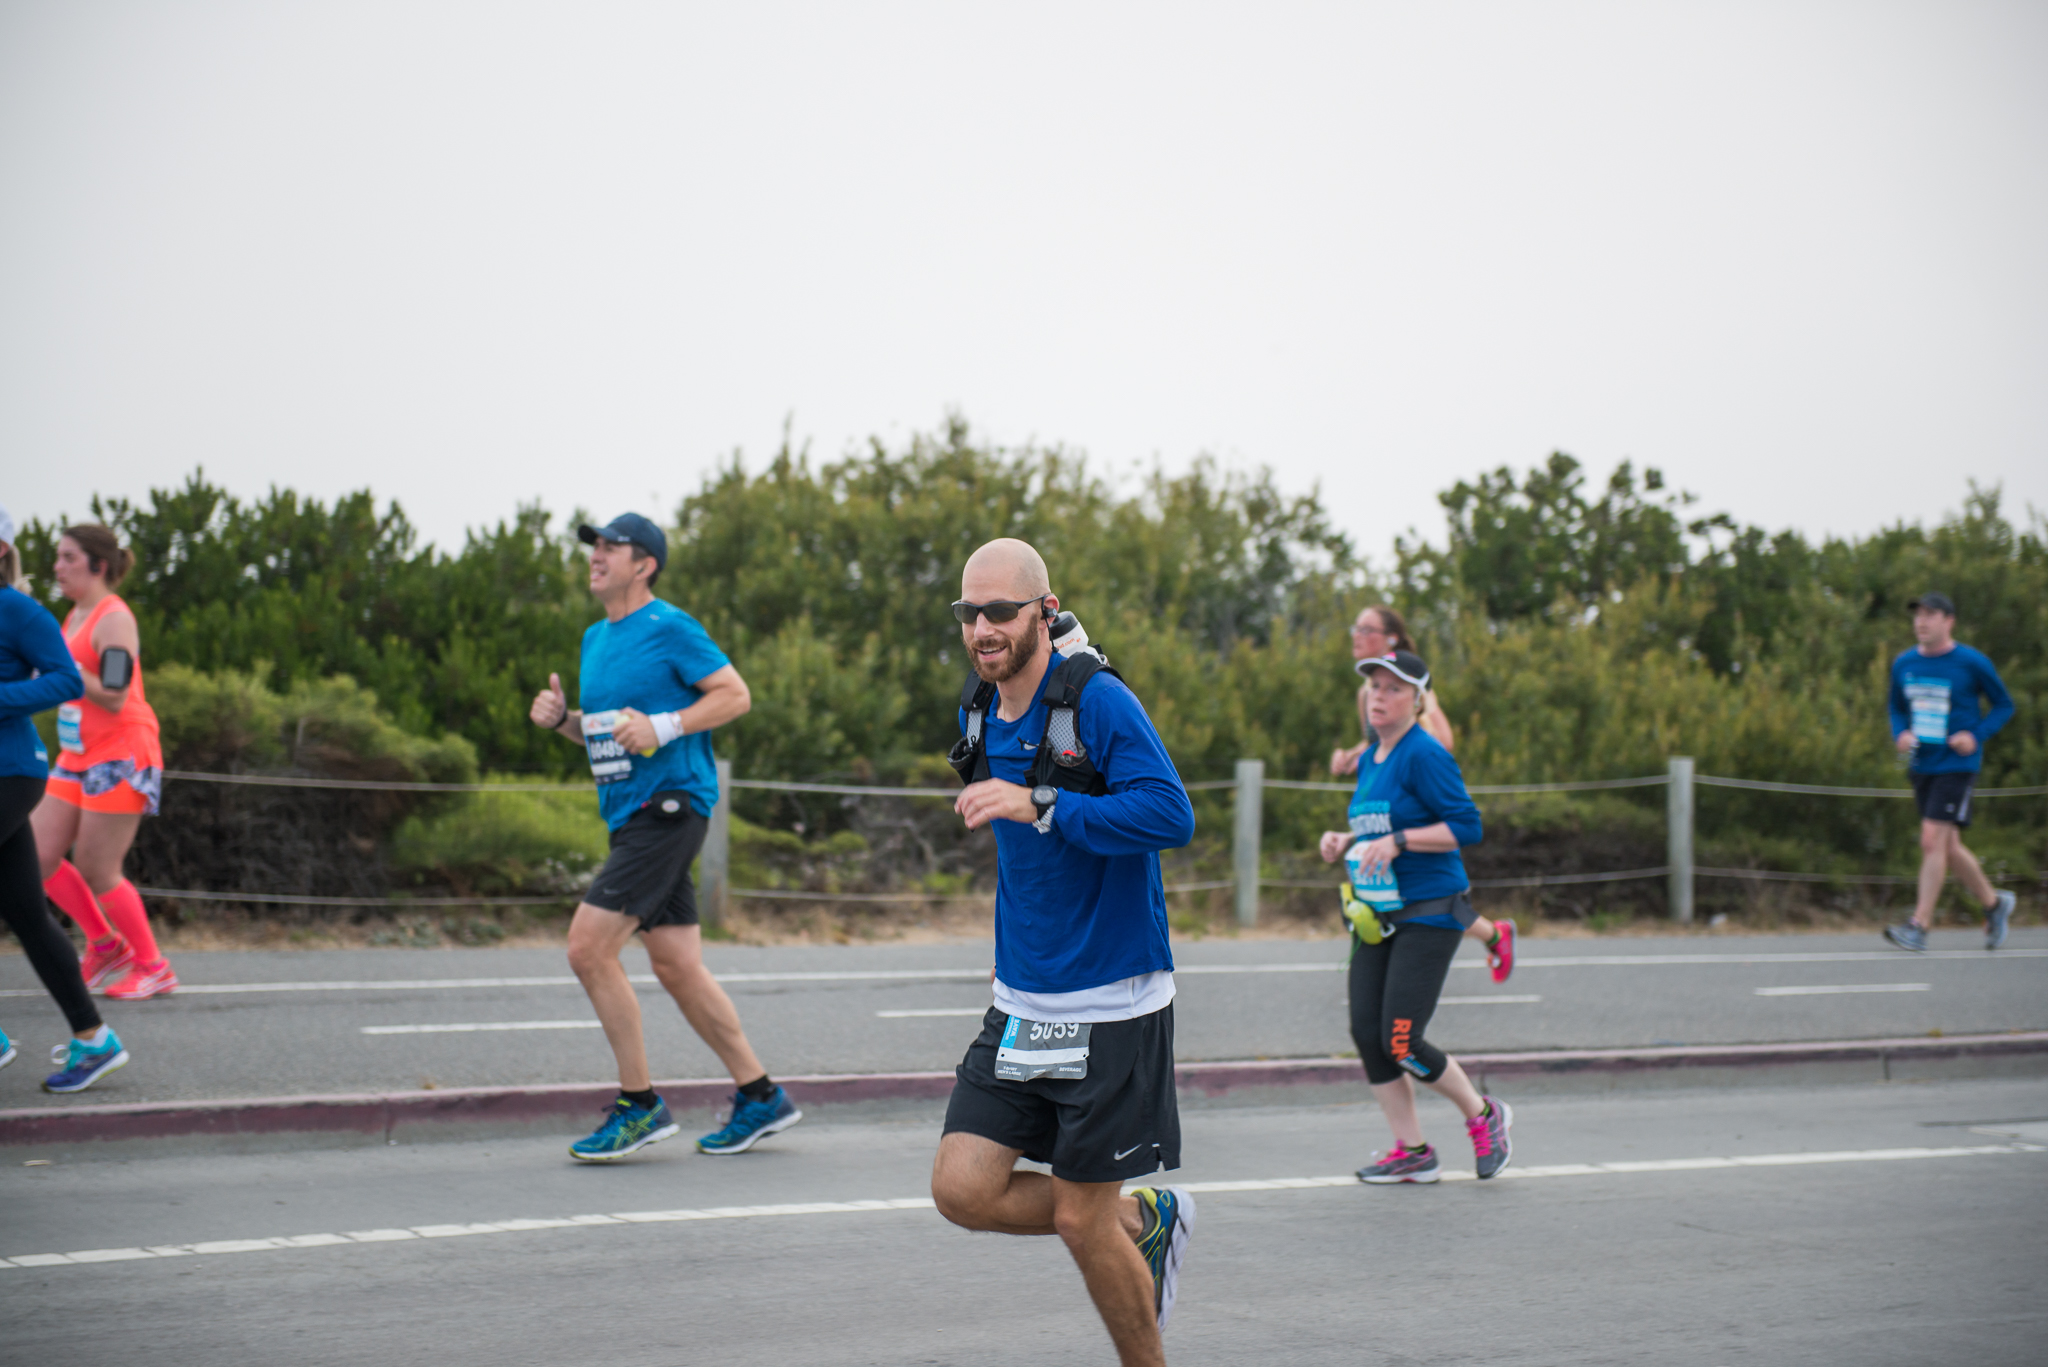 jb SF ultra race day F-41.jpg